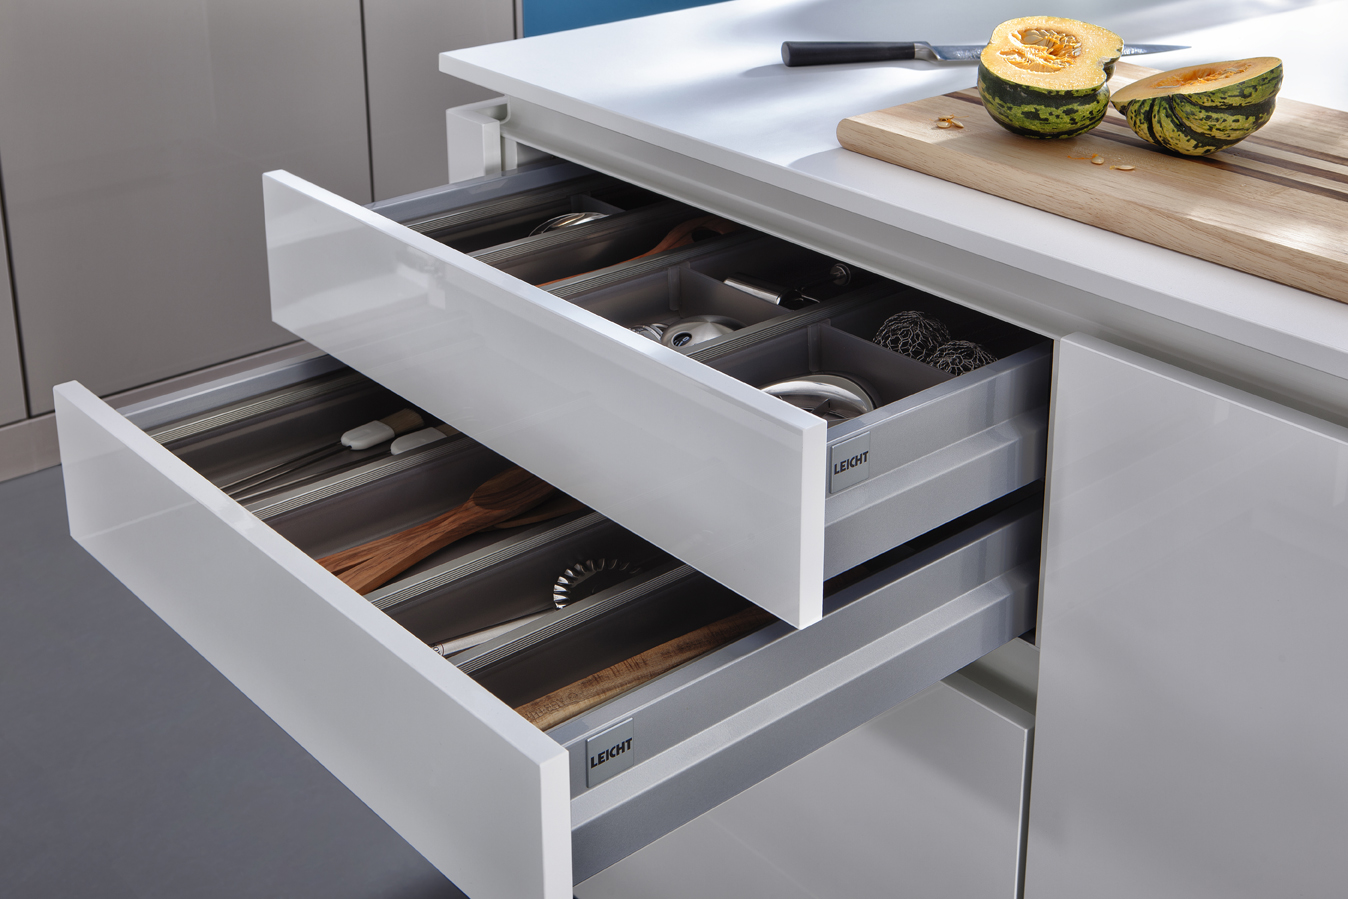 Ikea Modul Küche Värde Contino The New Standard In Handle Less Kitchen Cabinets